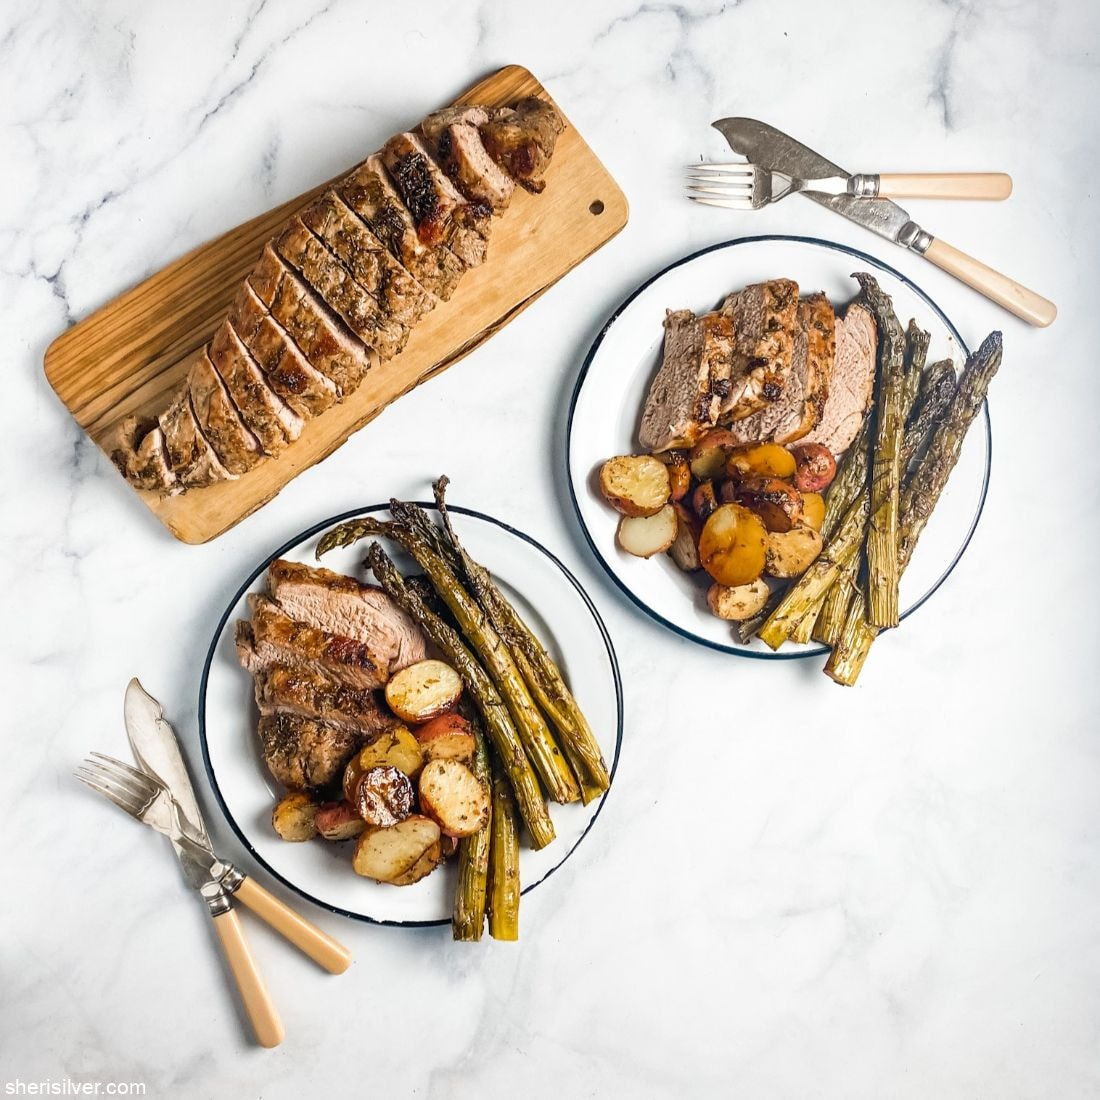 Roast Pork Tenderloin with New Potatoes and Asparagus l sherisilver.com